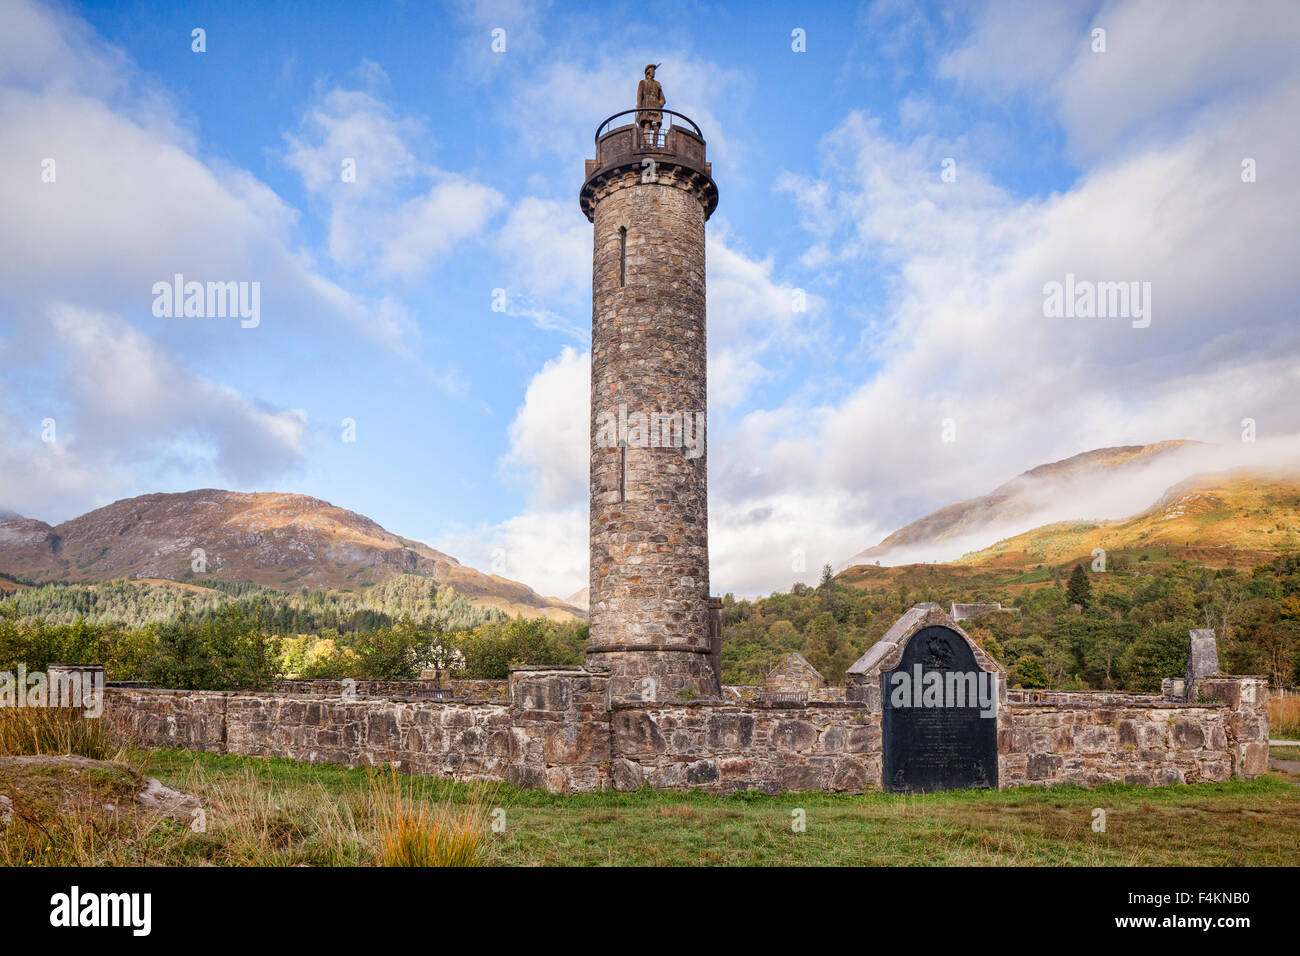 The Glenfinnan Monument at the head of Loch Shiel, Lochaber, Highland, Scotland. It marks the starting place of - Stock Image